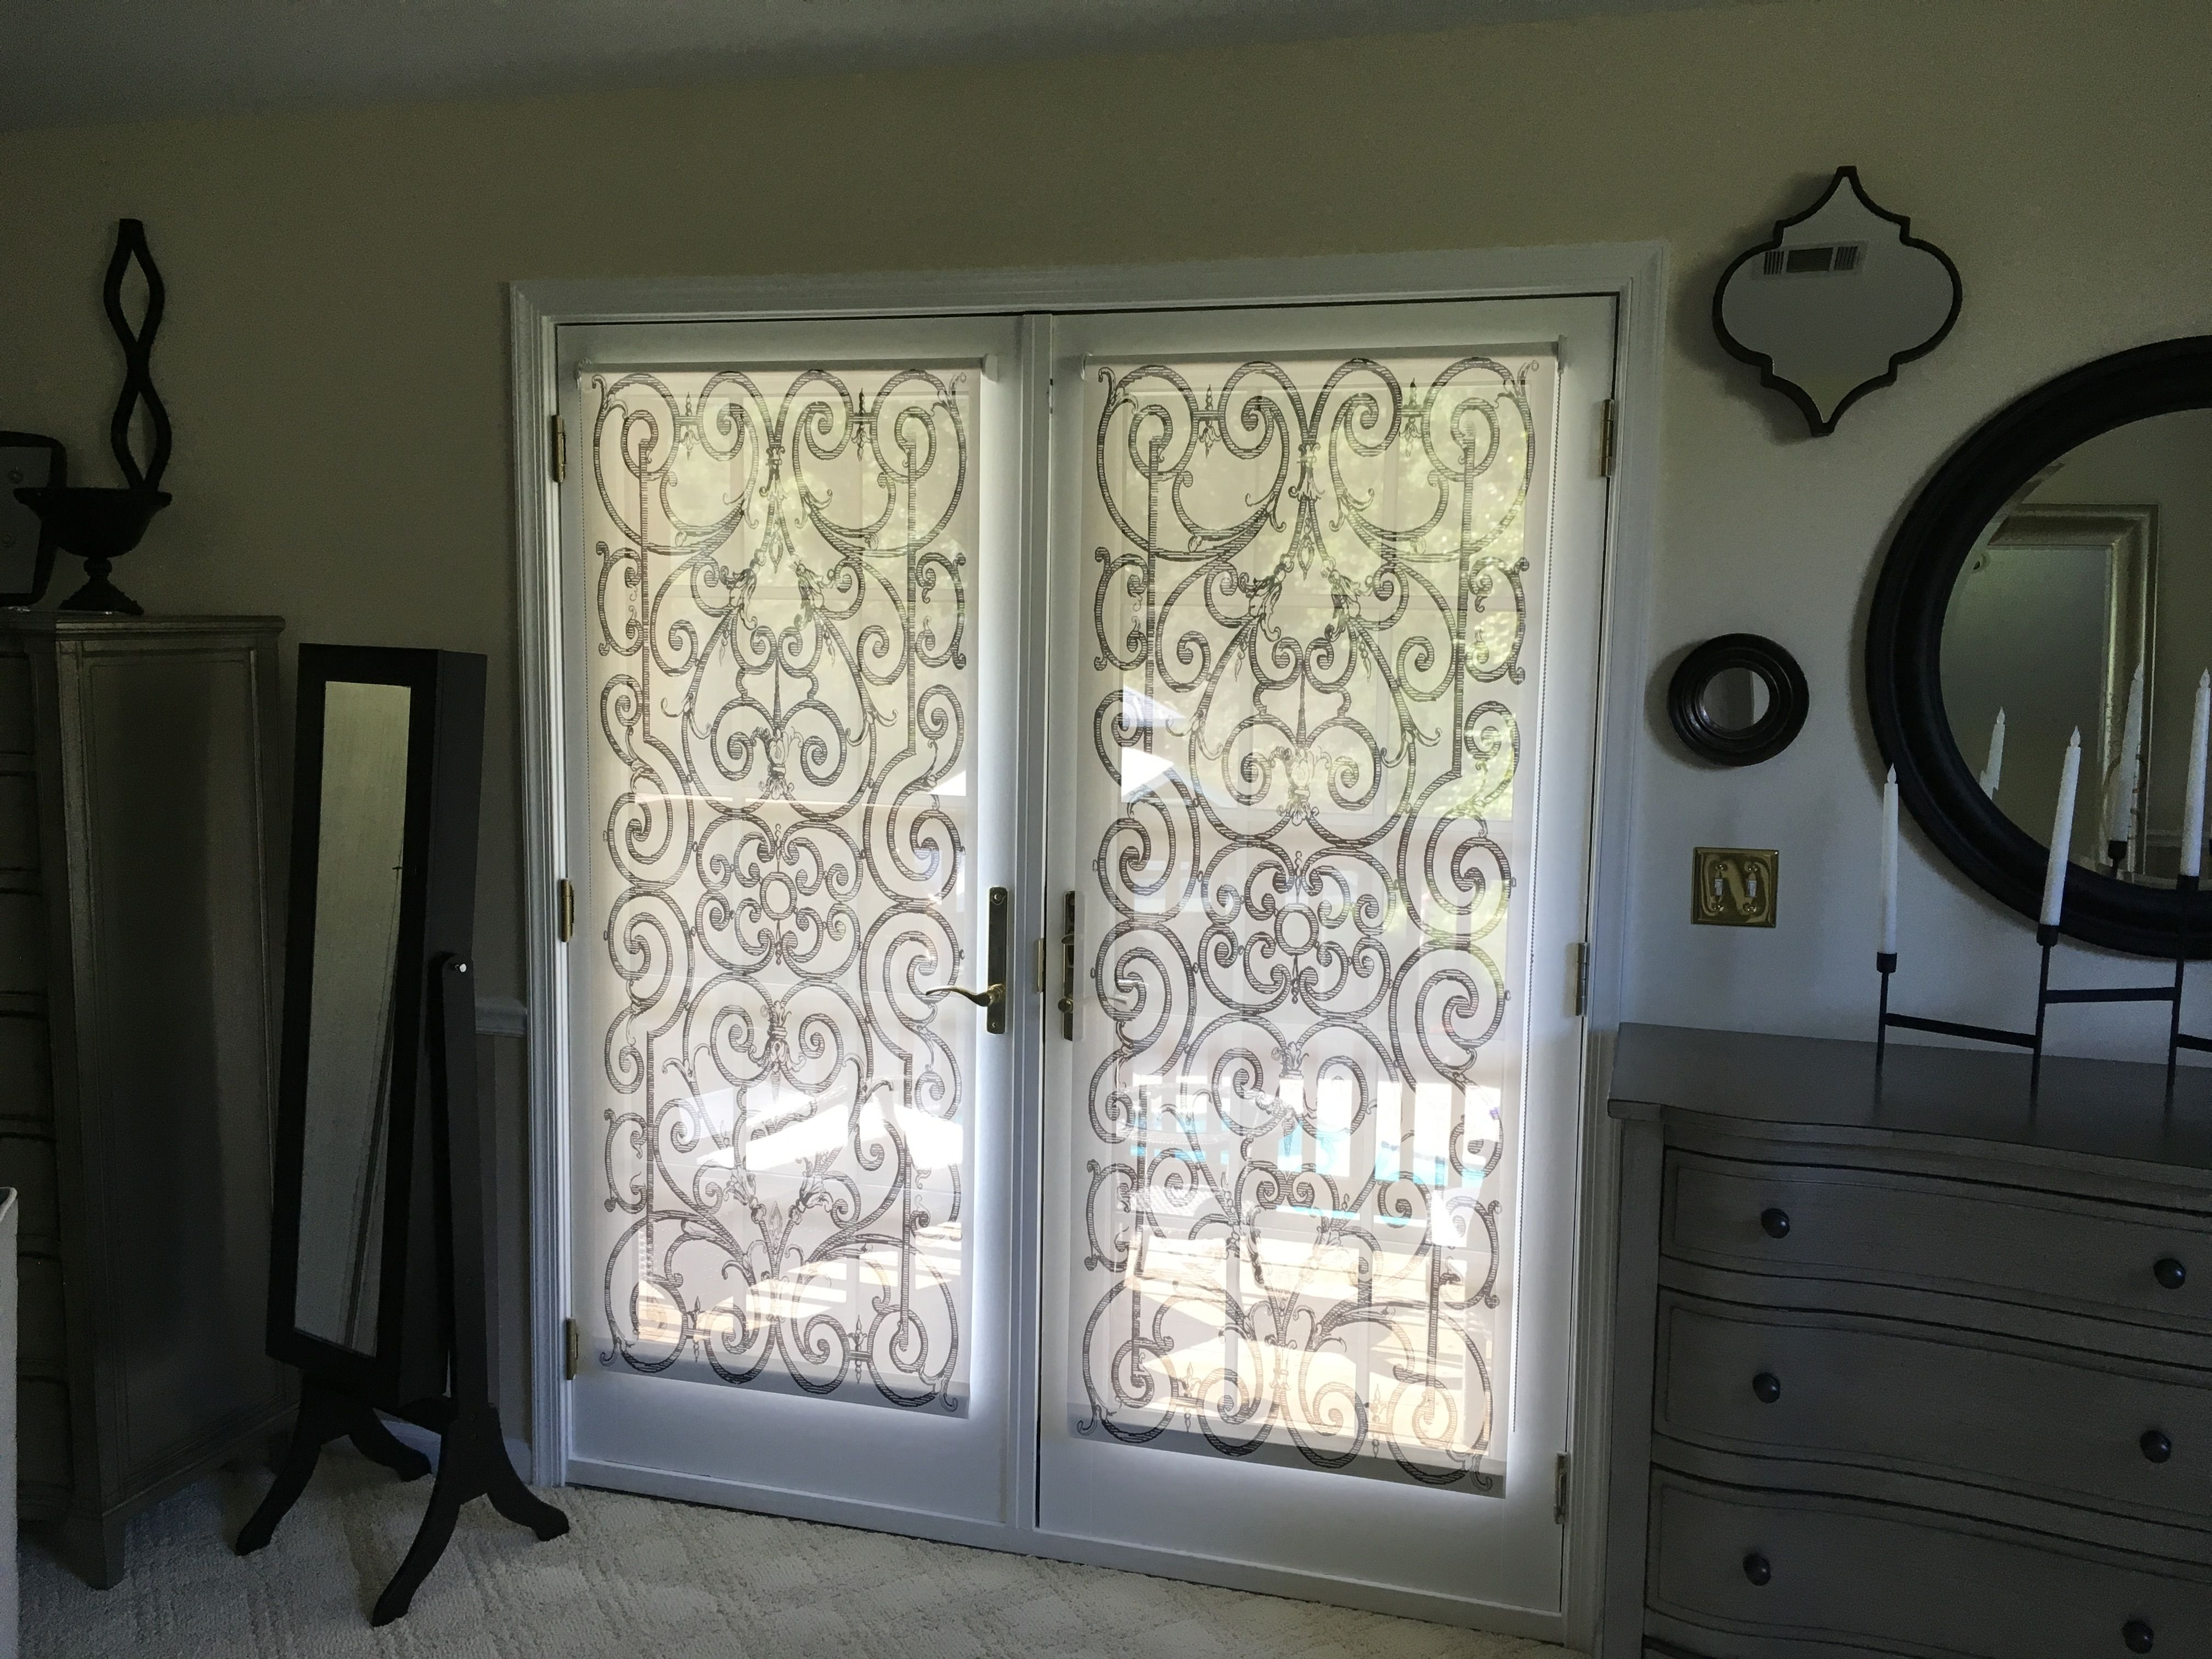 French doors done with custom solar shades in delia shades french doors done with custom solar shades in delia shades french door pattern get a free estimate for your own project by going to rubansaba